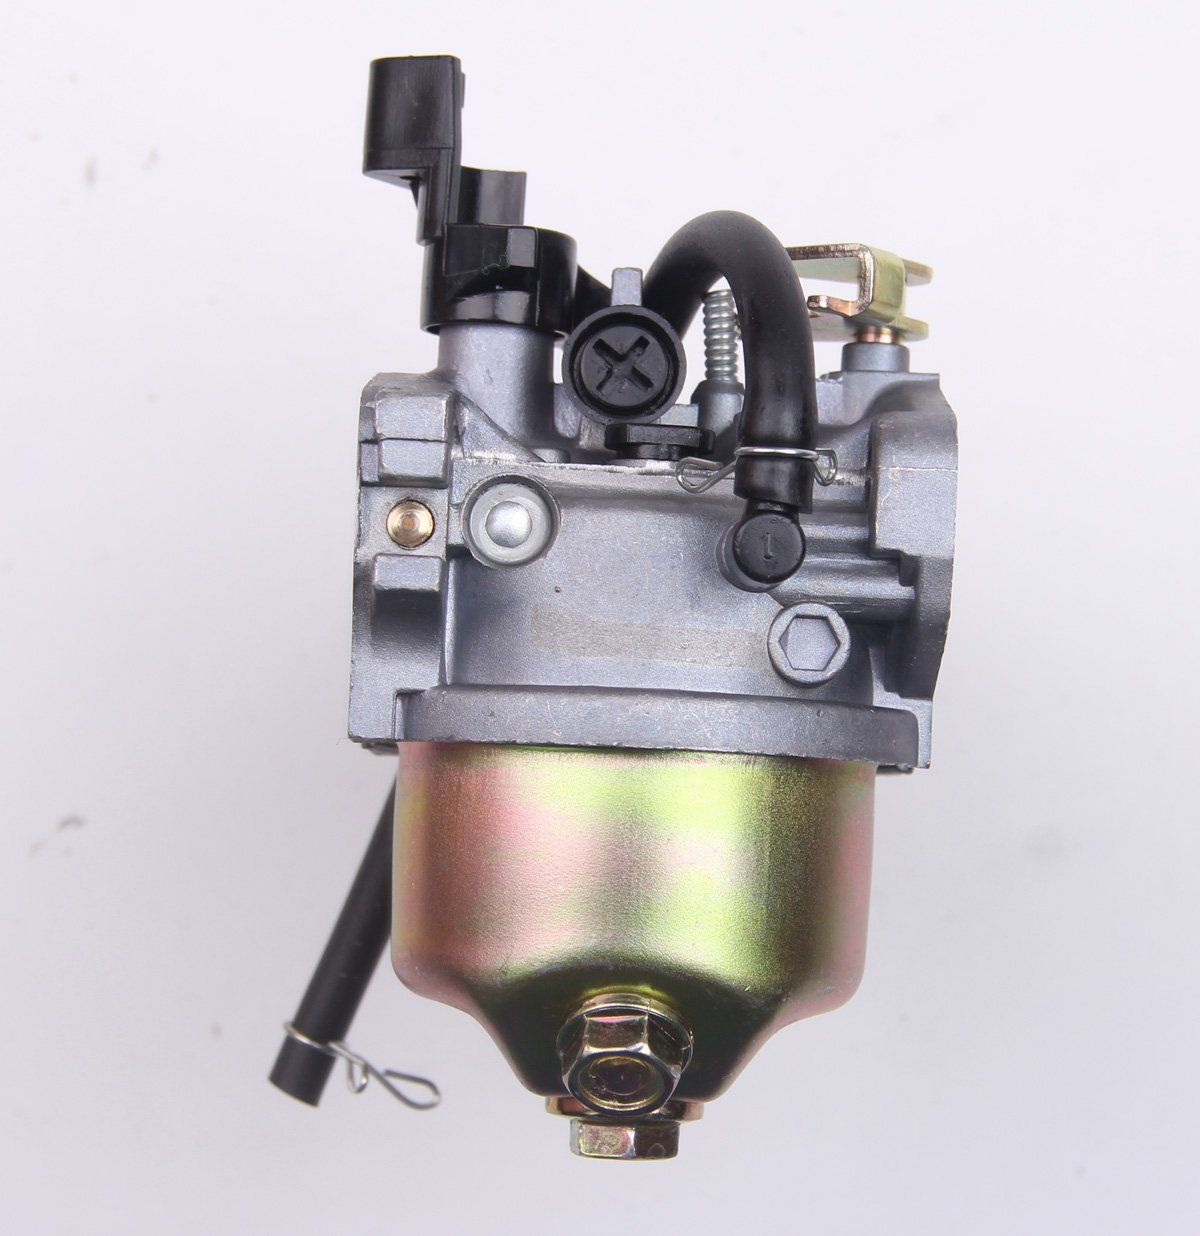 hight resolution of new carburetor with gaskets primer and fuel filter for troy bilt mtd cub cadet snow blower